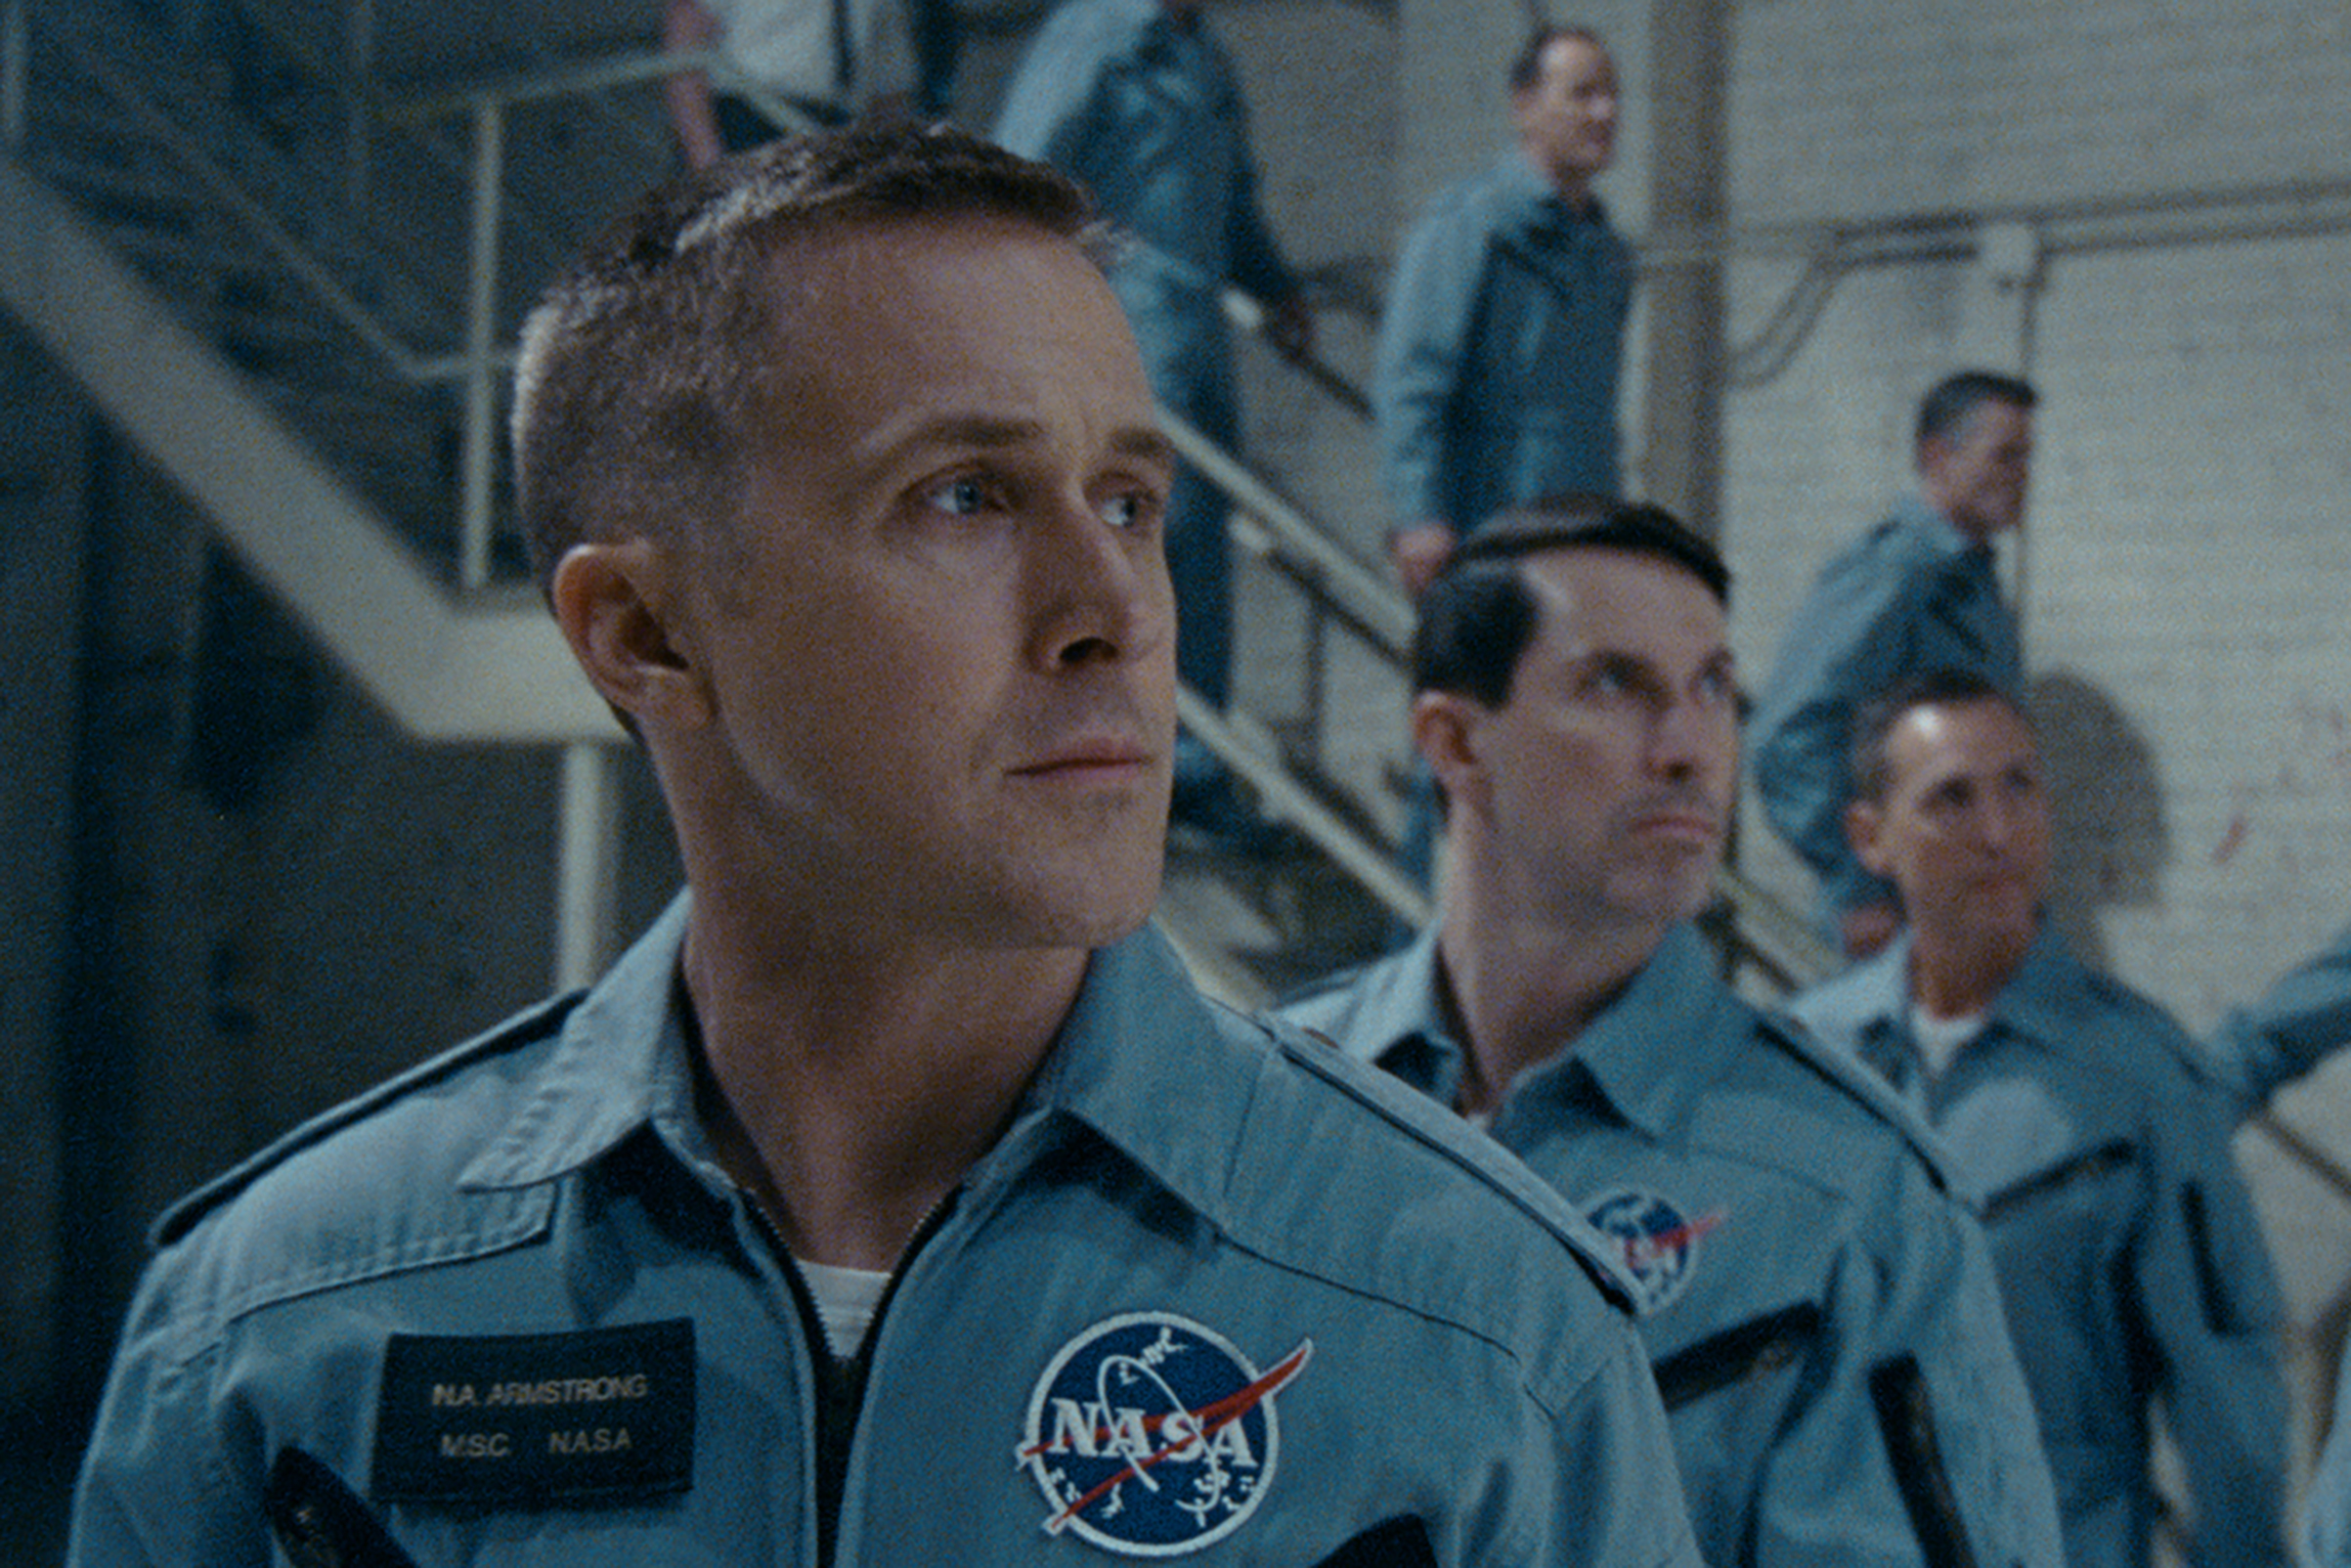 """On the heels of their six-time Academy Award®-winning smash, """"La La Land,"""" Oscar®-winning director Damien Chazelle and star RYAN GOSLING reteam for Universal Pictures' """"First Man,"""" the riveting story of NASA's mission to land a man on the moon, focusing on Neil Armstrong and the years 1961-1969."""